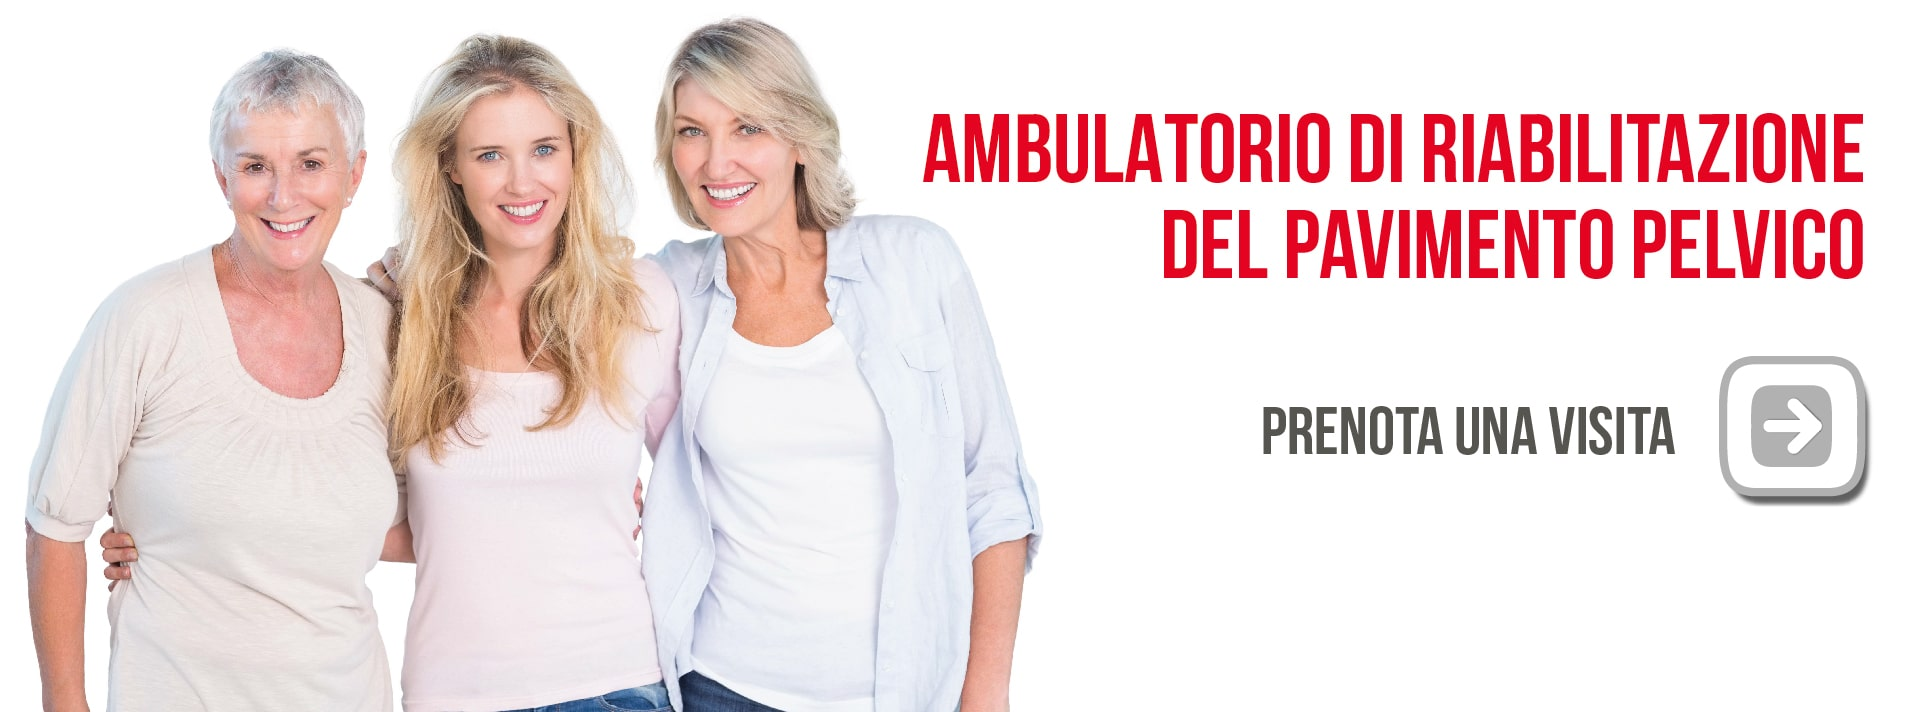 Ambulatorio Pavimento Pelvico